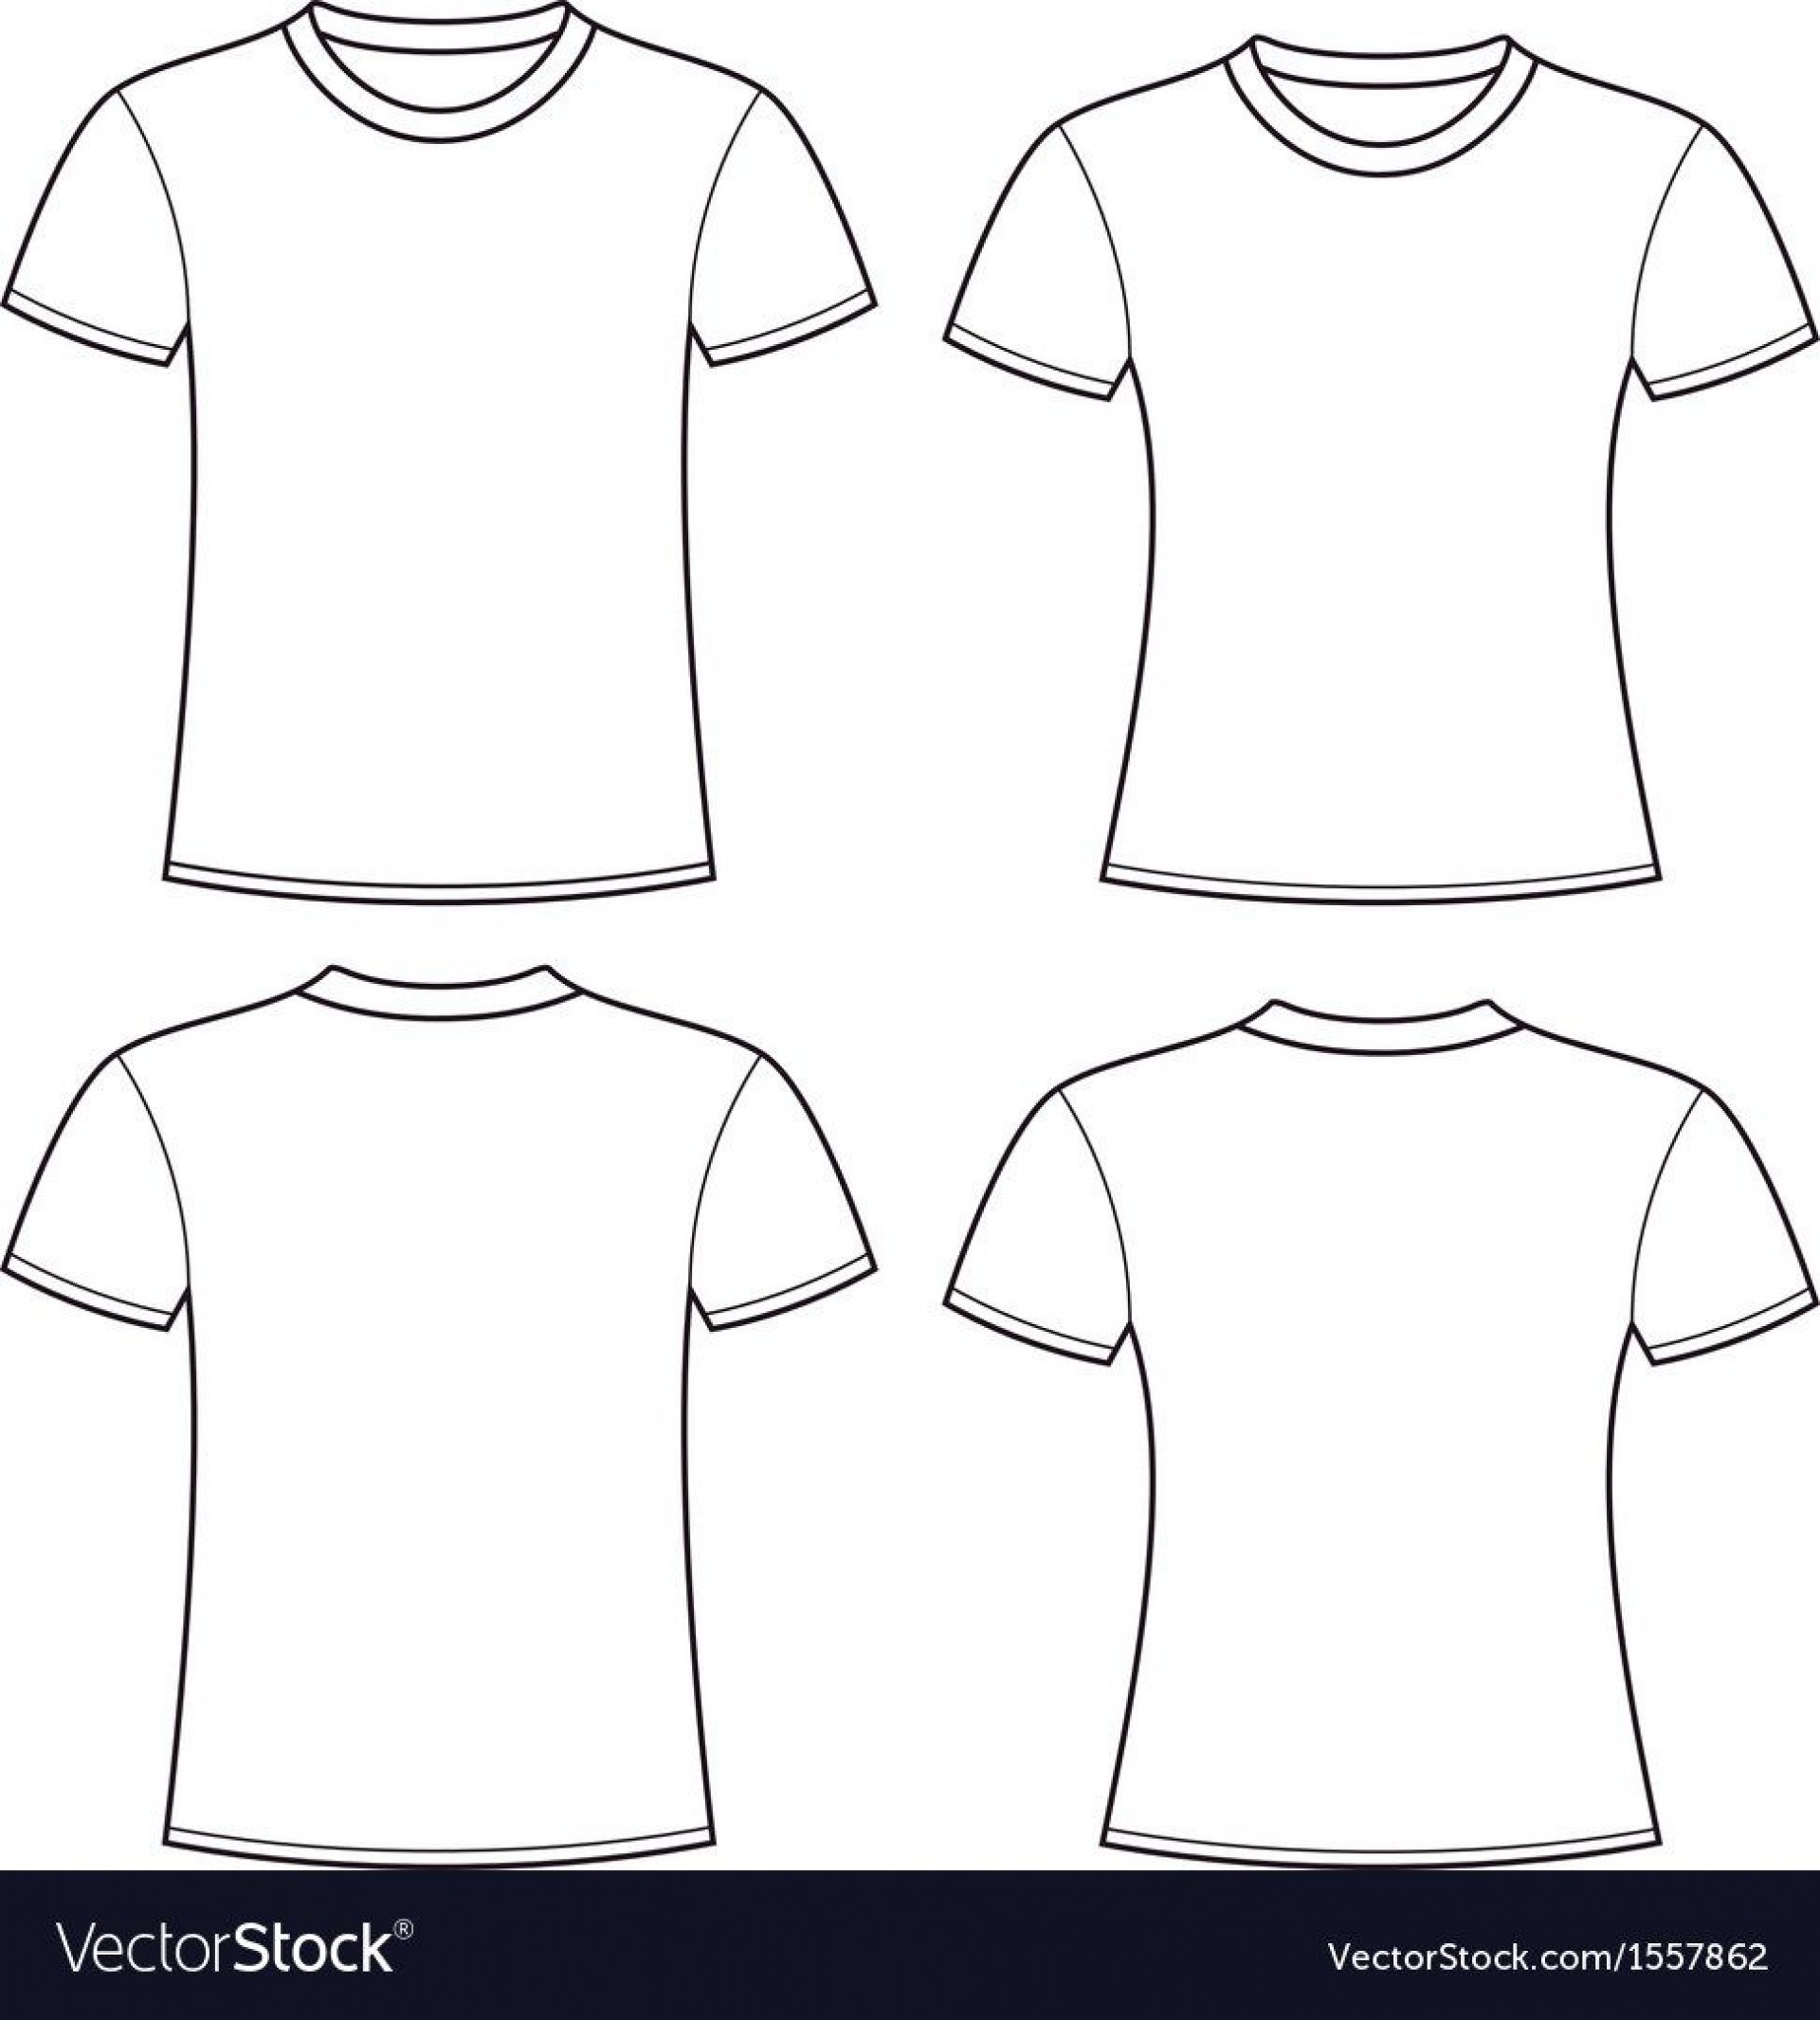 005 Sensational Blank Tee Shirt Template Photo  T Design Pdf Free T-shirt Front And Back Download1920